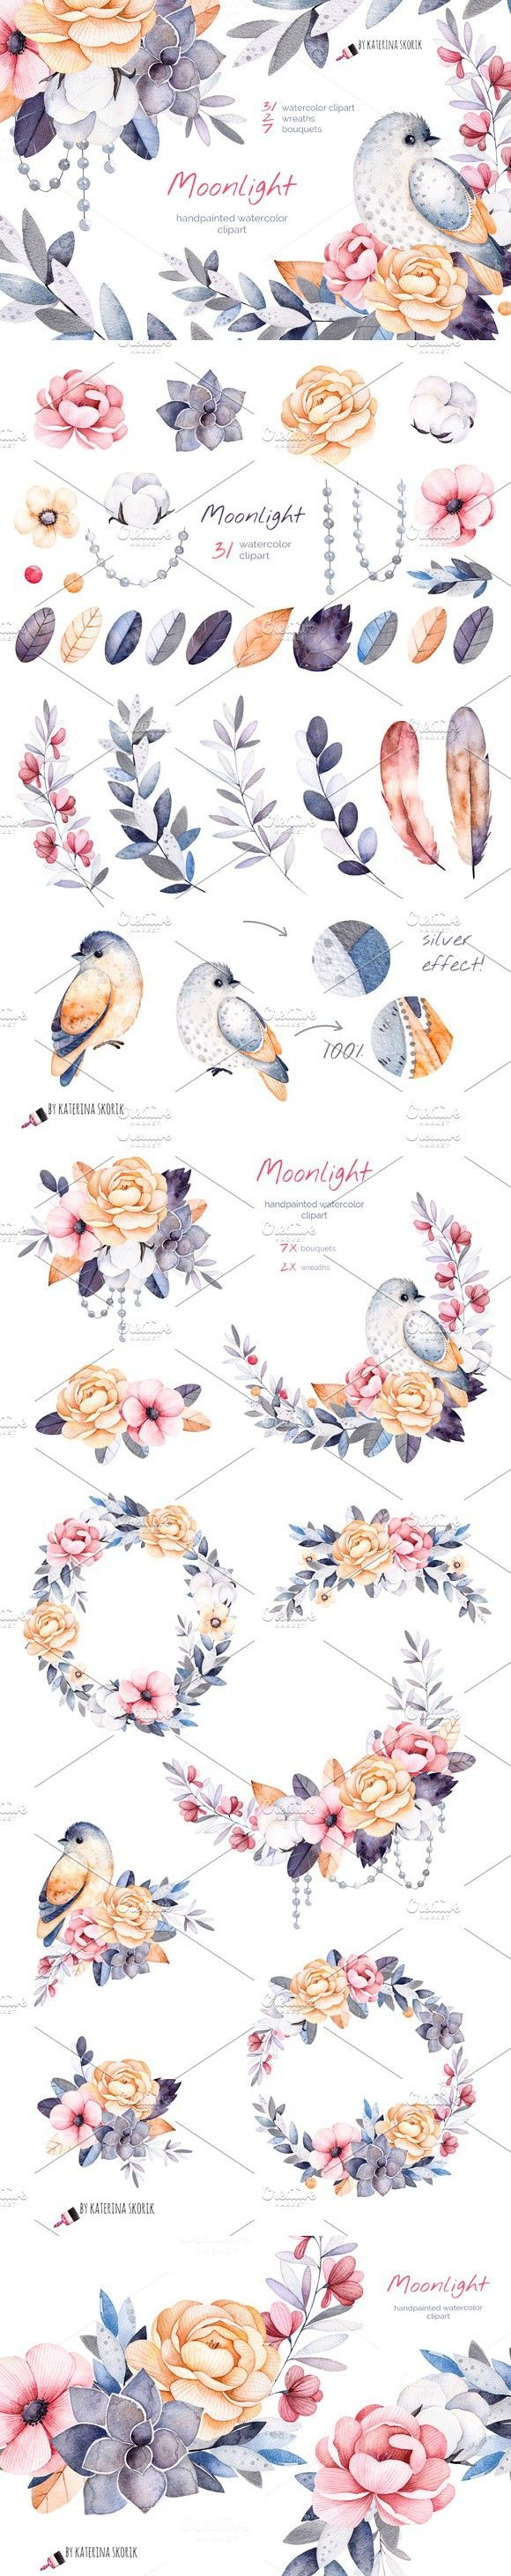 Moonlight watercolor collection christmas patterns